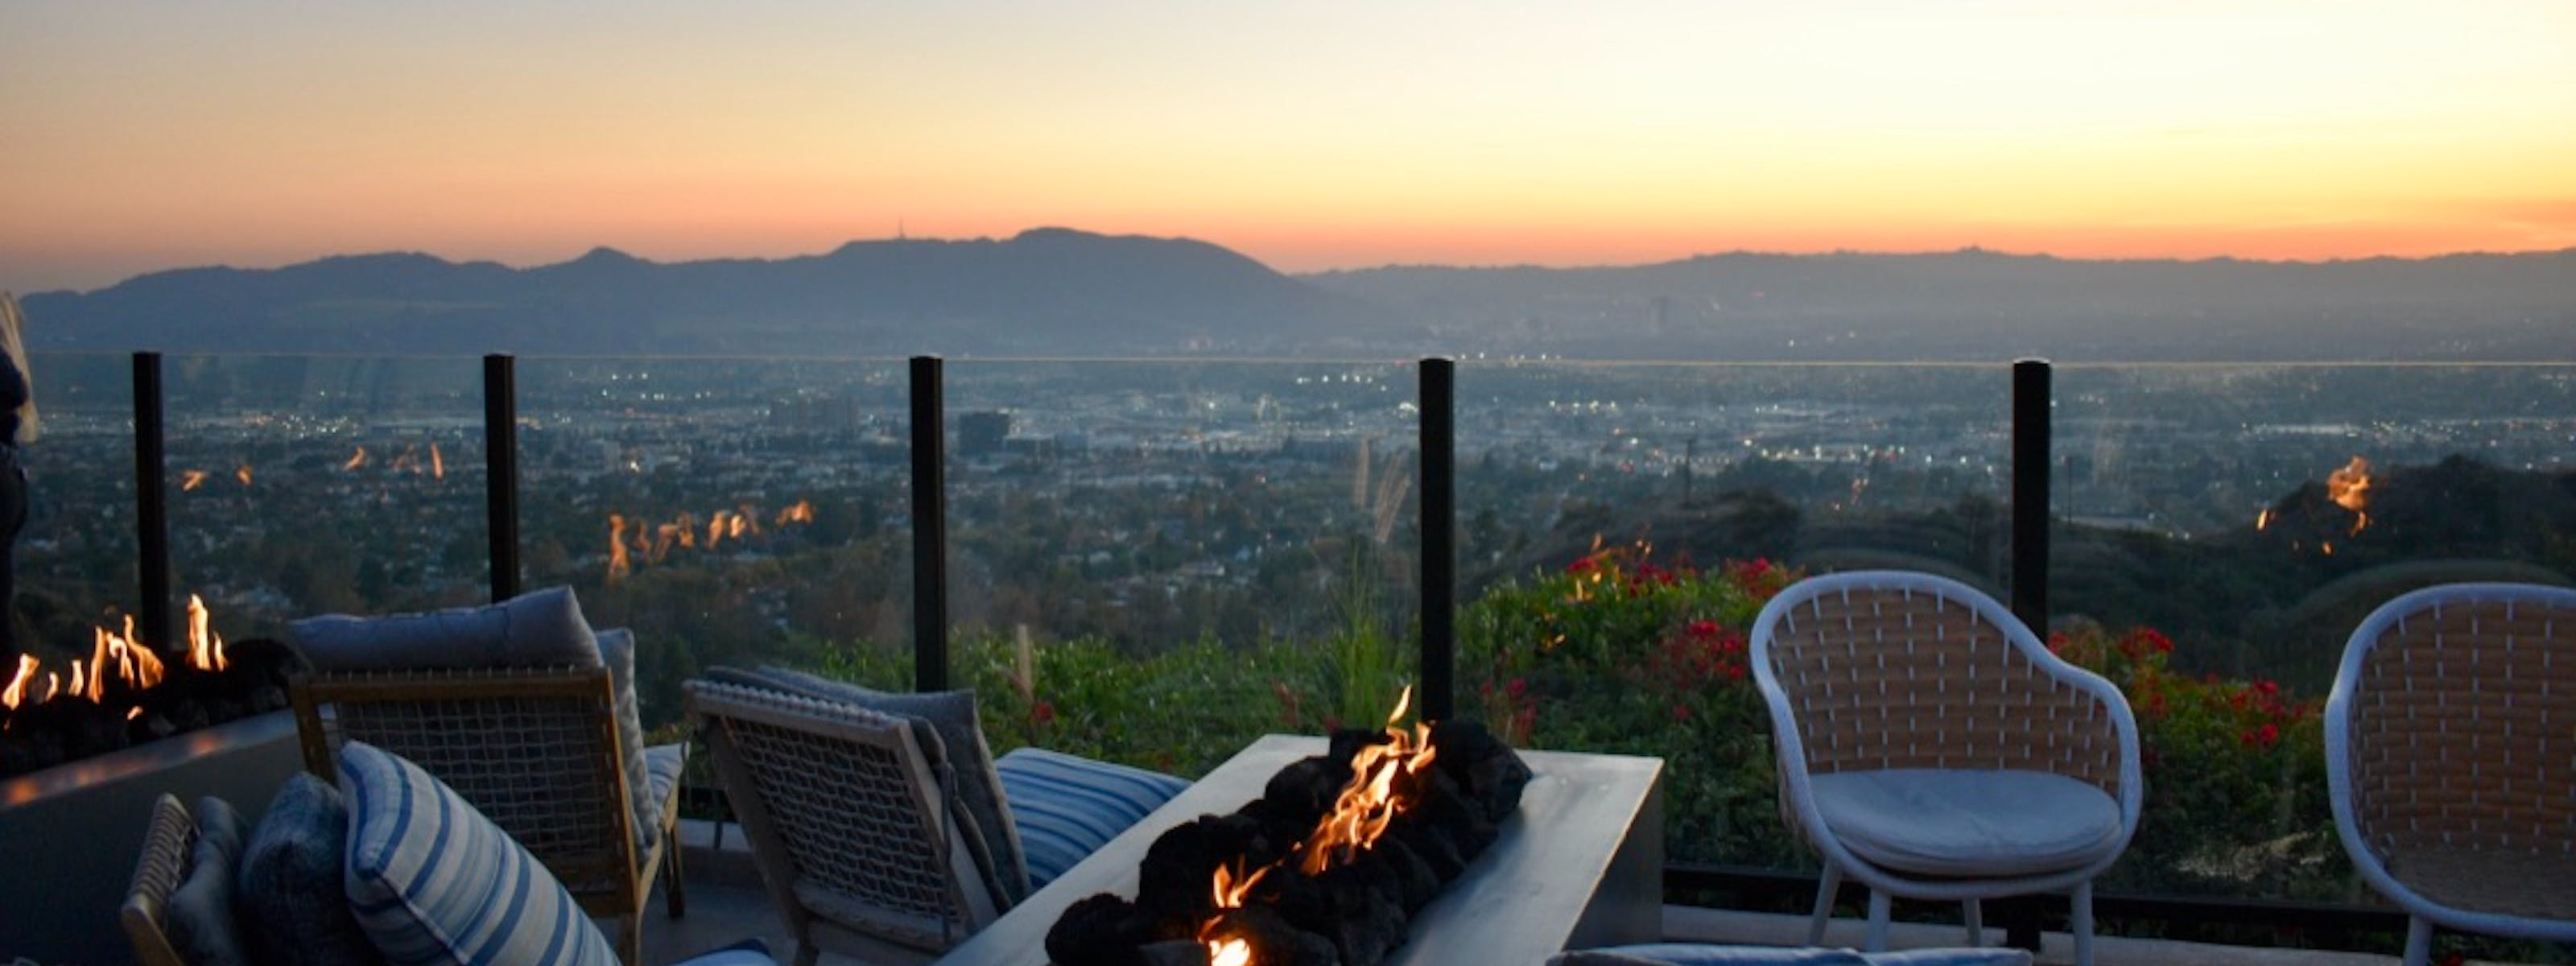 Where To Have Date Night Outside In LA - Los Angeles - The Infatuation